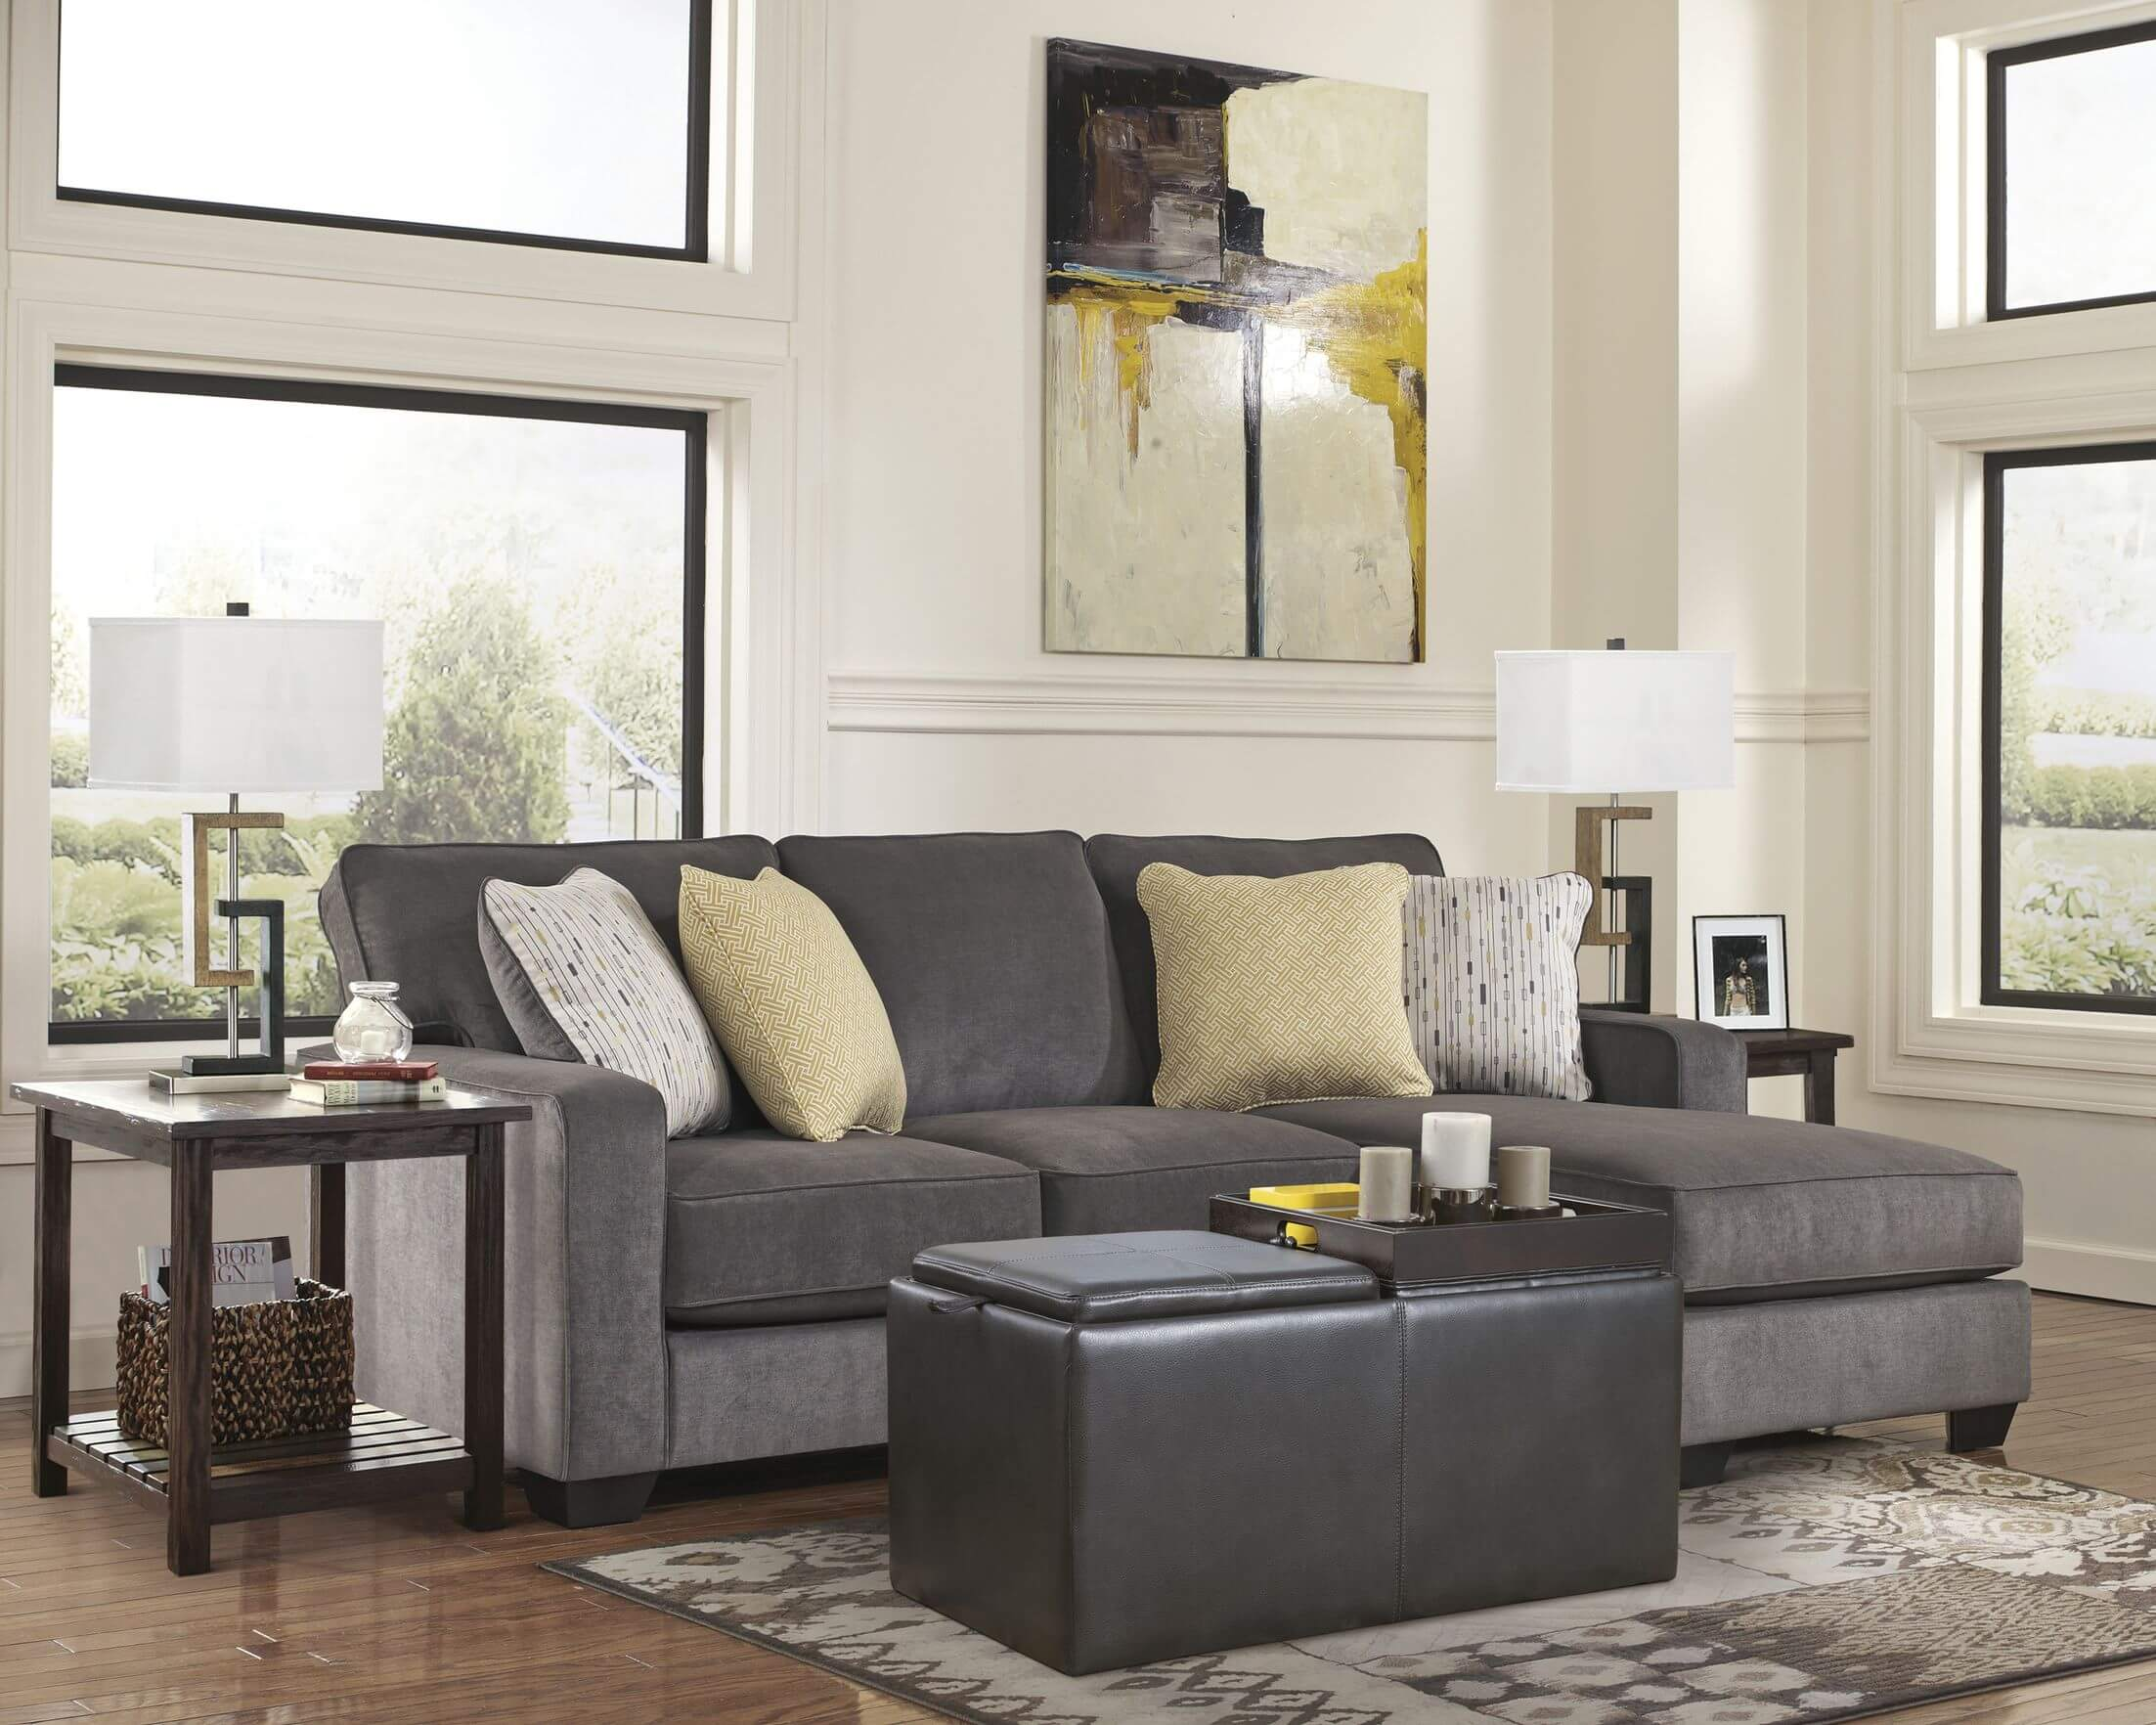 furniture amusing grey leather sofa best lastest new design amazing for way living room sectional with storage ott and wooden side table suit end tables west elm mosaic coffee